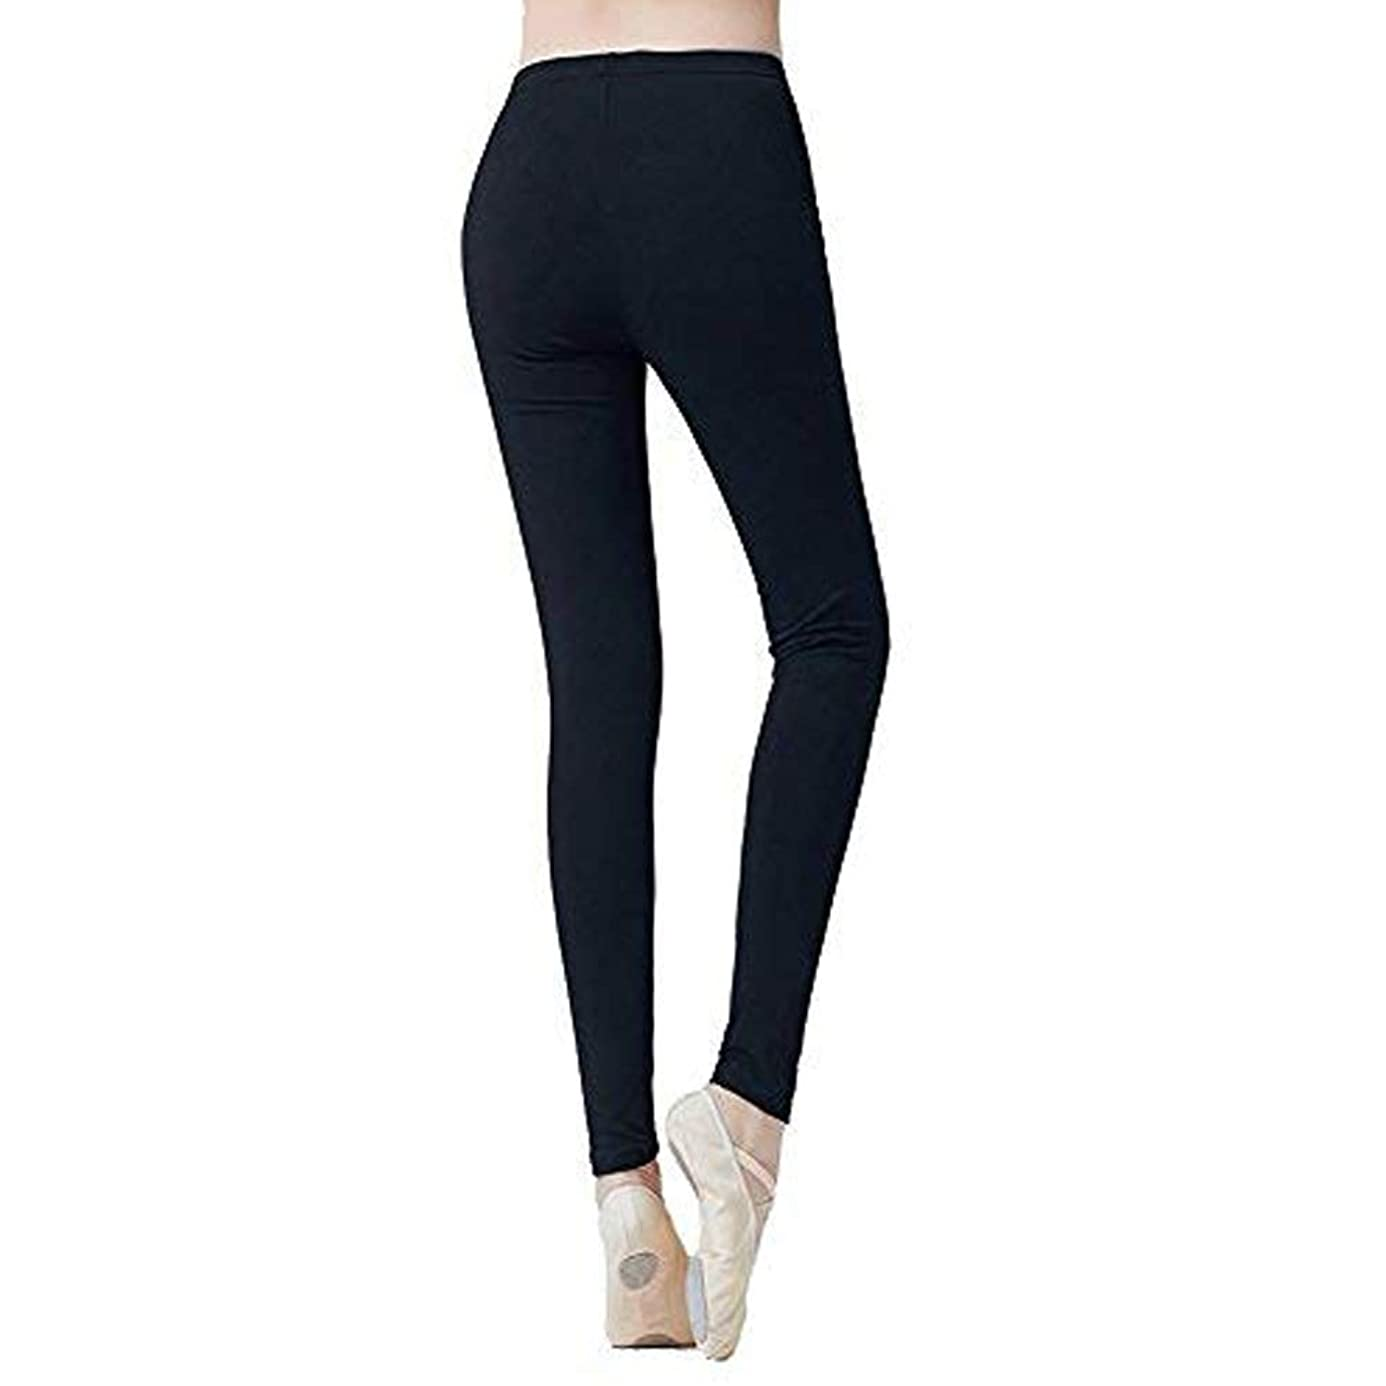 DANCEYOU Athletic Dance Leggings Pants for Women Sports Ballet Gym Yoga Workout Power Pants